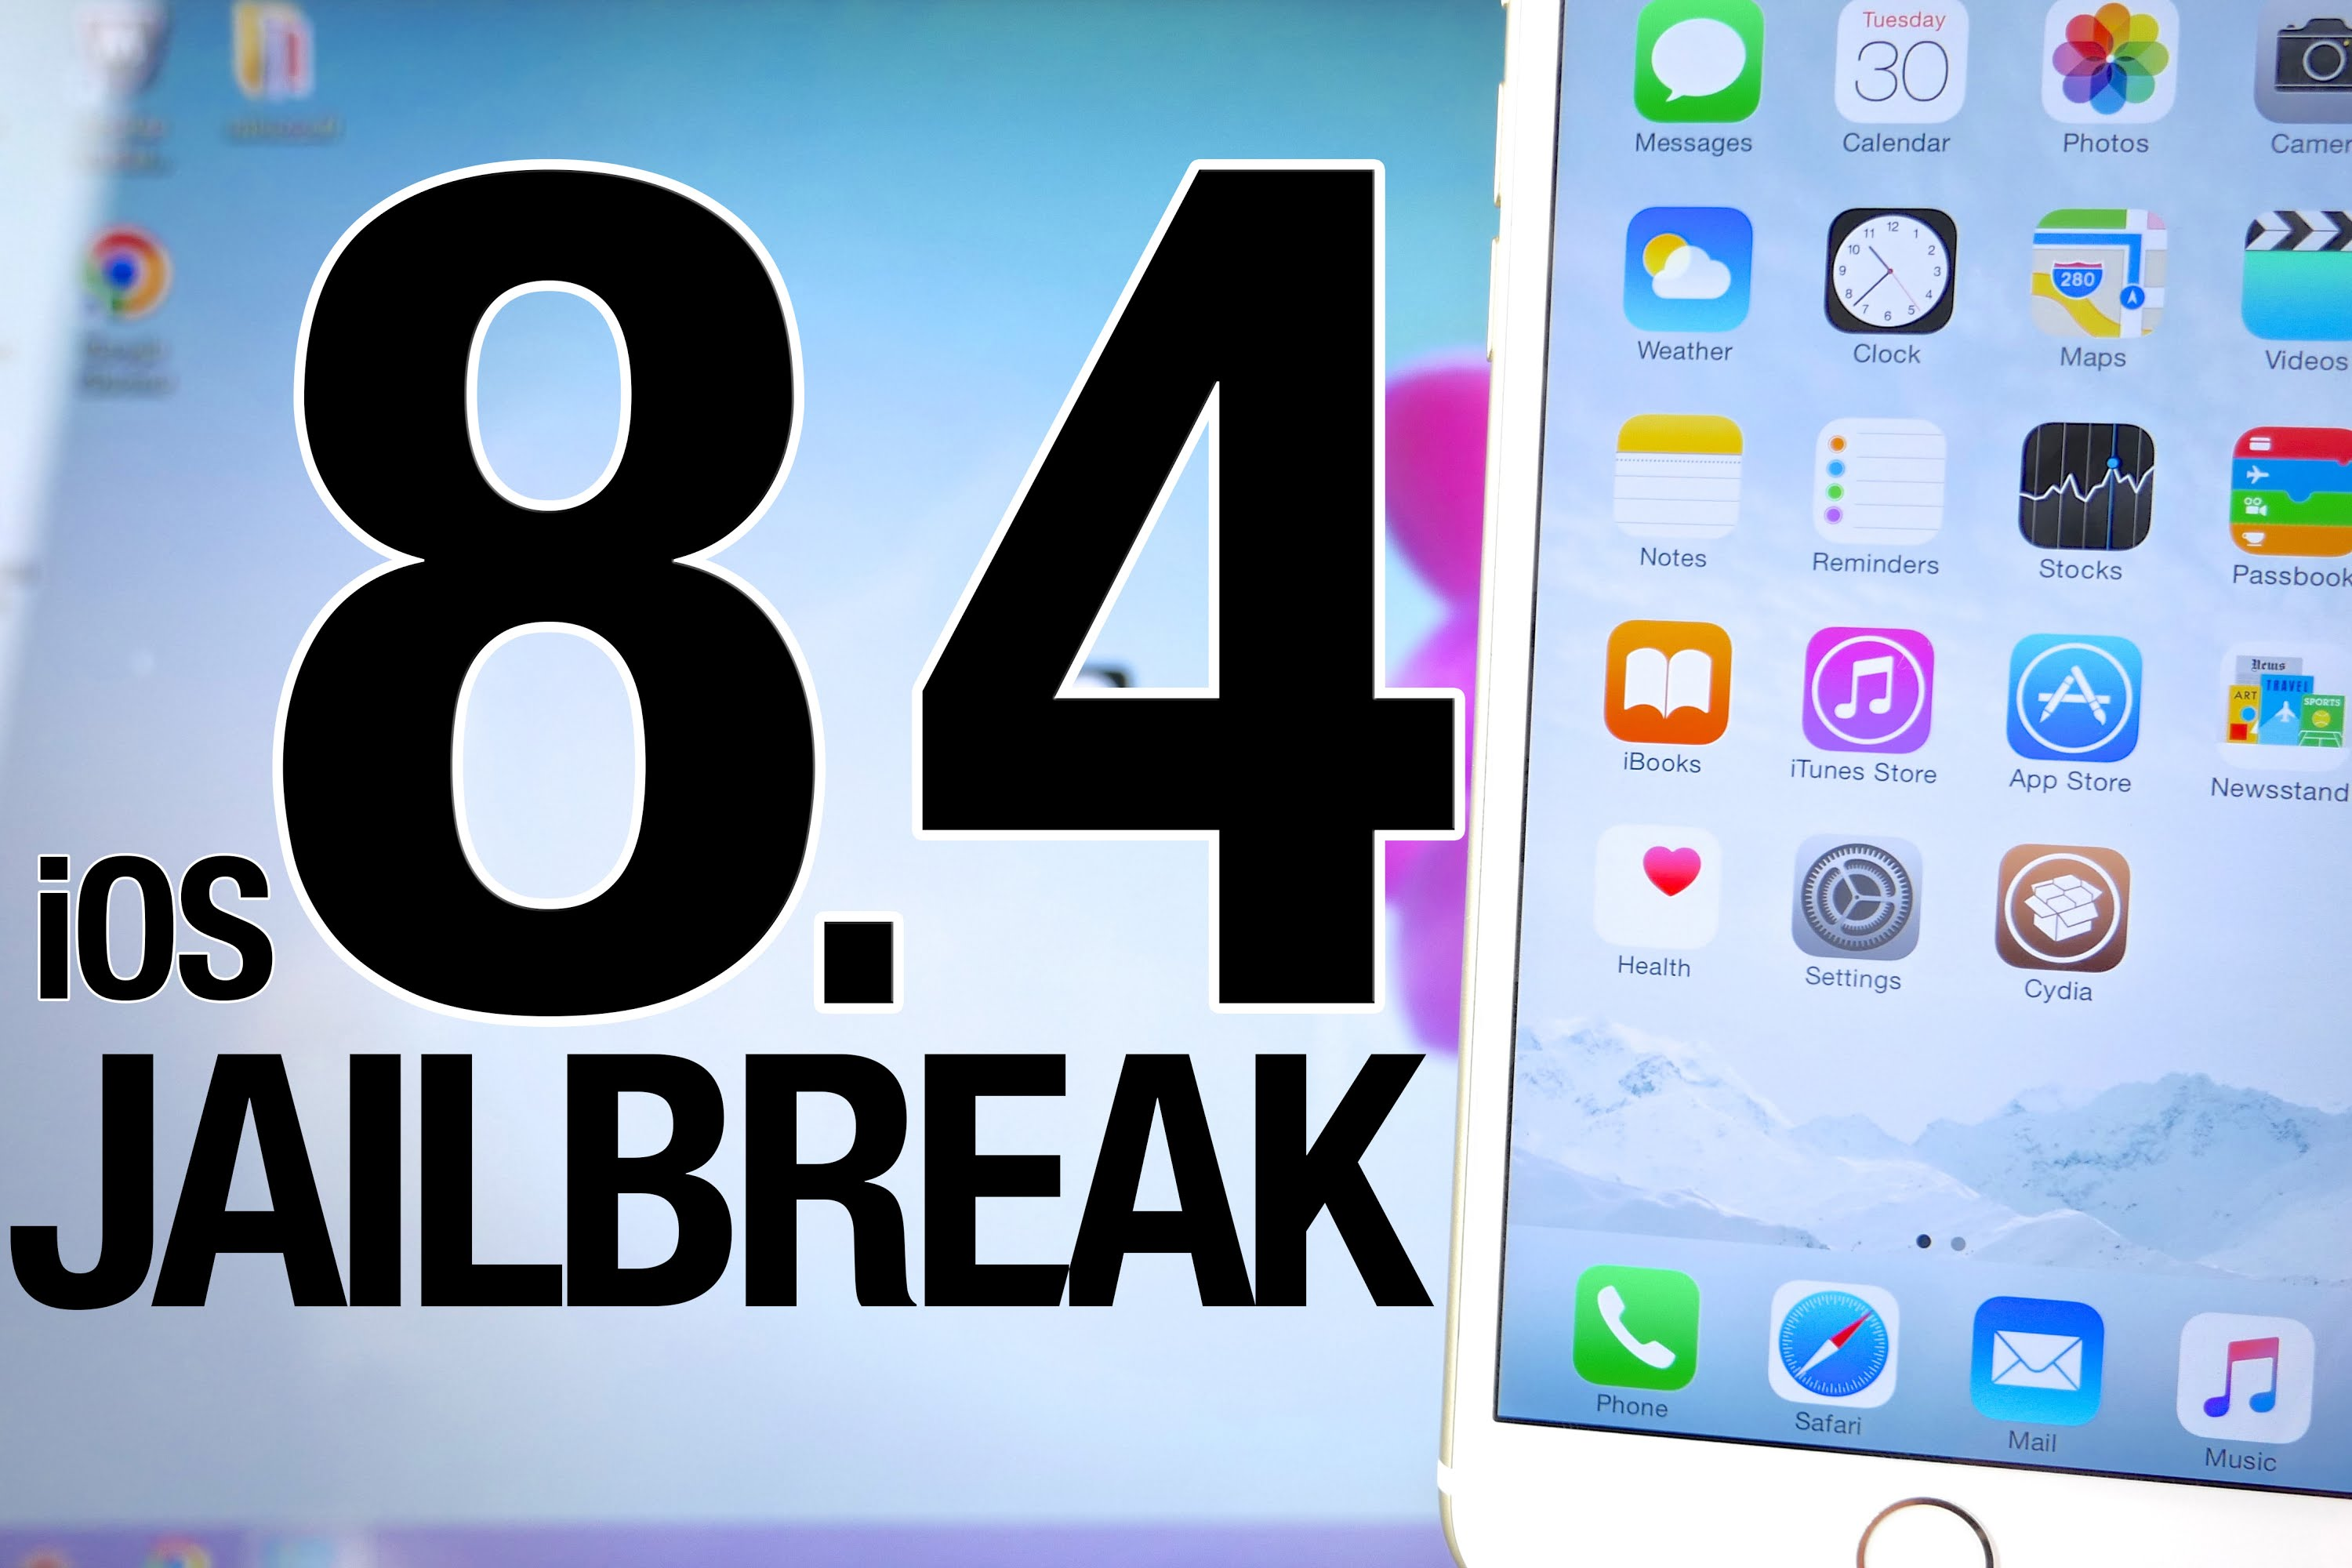 How to jailbreak iOS 8.4 with TaiG on mac OS X